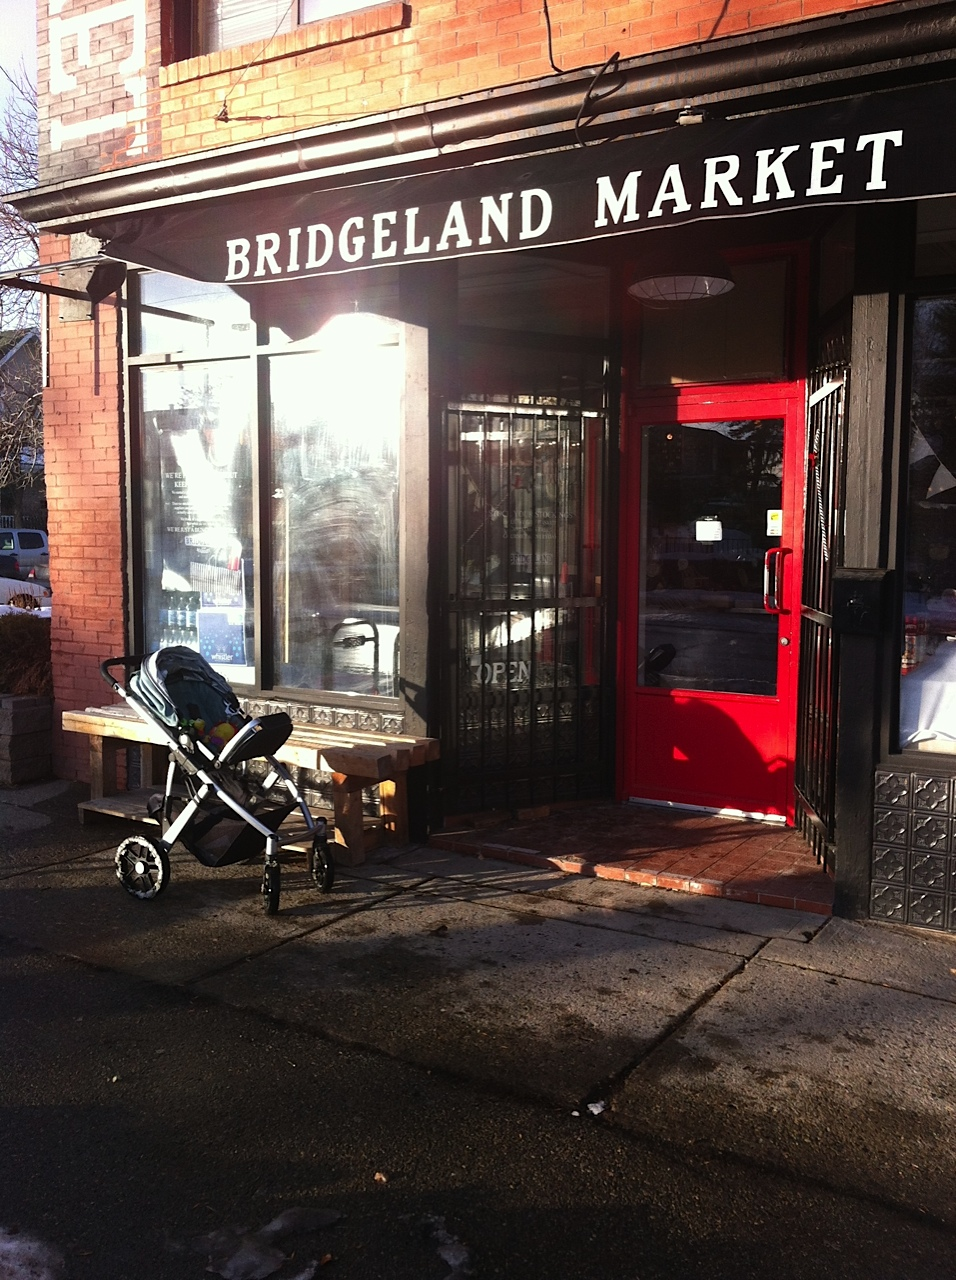 Bridgeland Market is located on 1st Ave and 10th St NE.